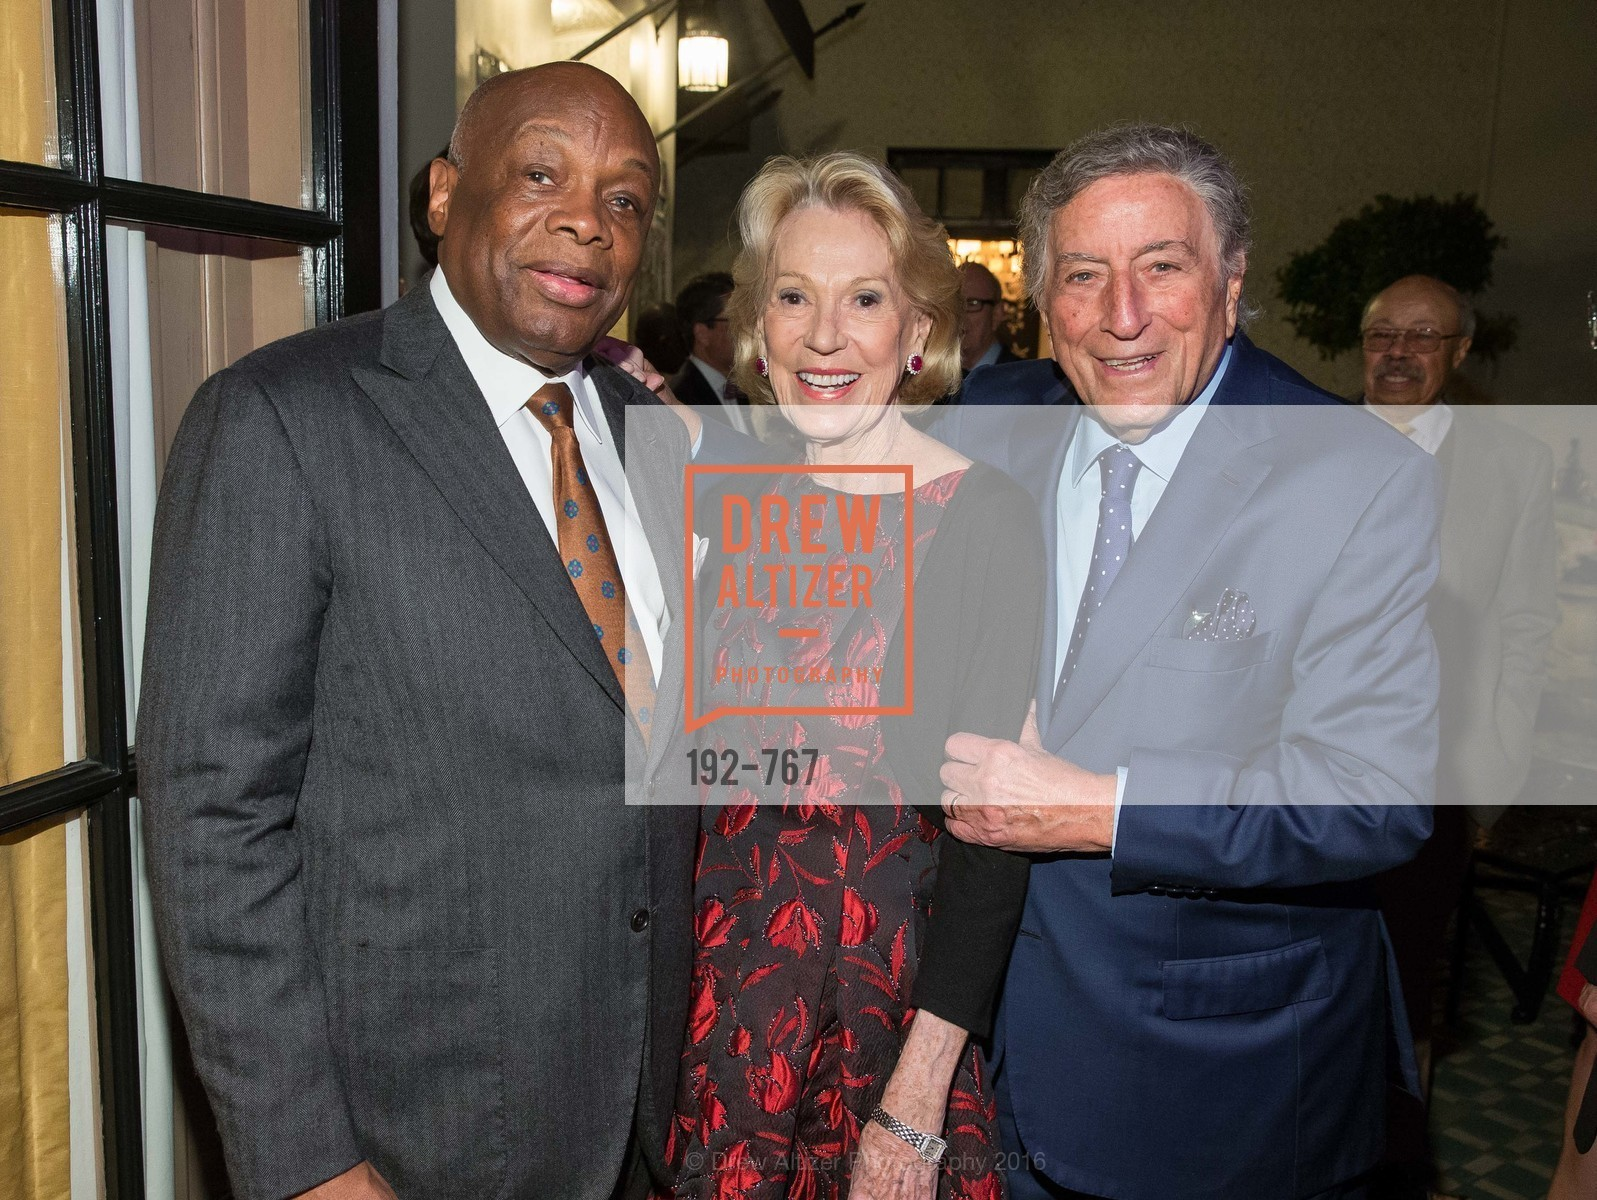 Willie Brown, Charlotte Shultz, Tony Bennett, A Special Reception with Tony Bennett, The Fairmont, San Francisco, The Penthouse Suite, January 26th, 2016,Drew Altizer, Drew Altizer Photography, full-service event agency, private events, San Francisco photographer, photographer California